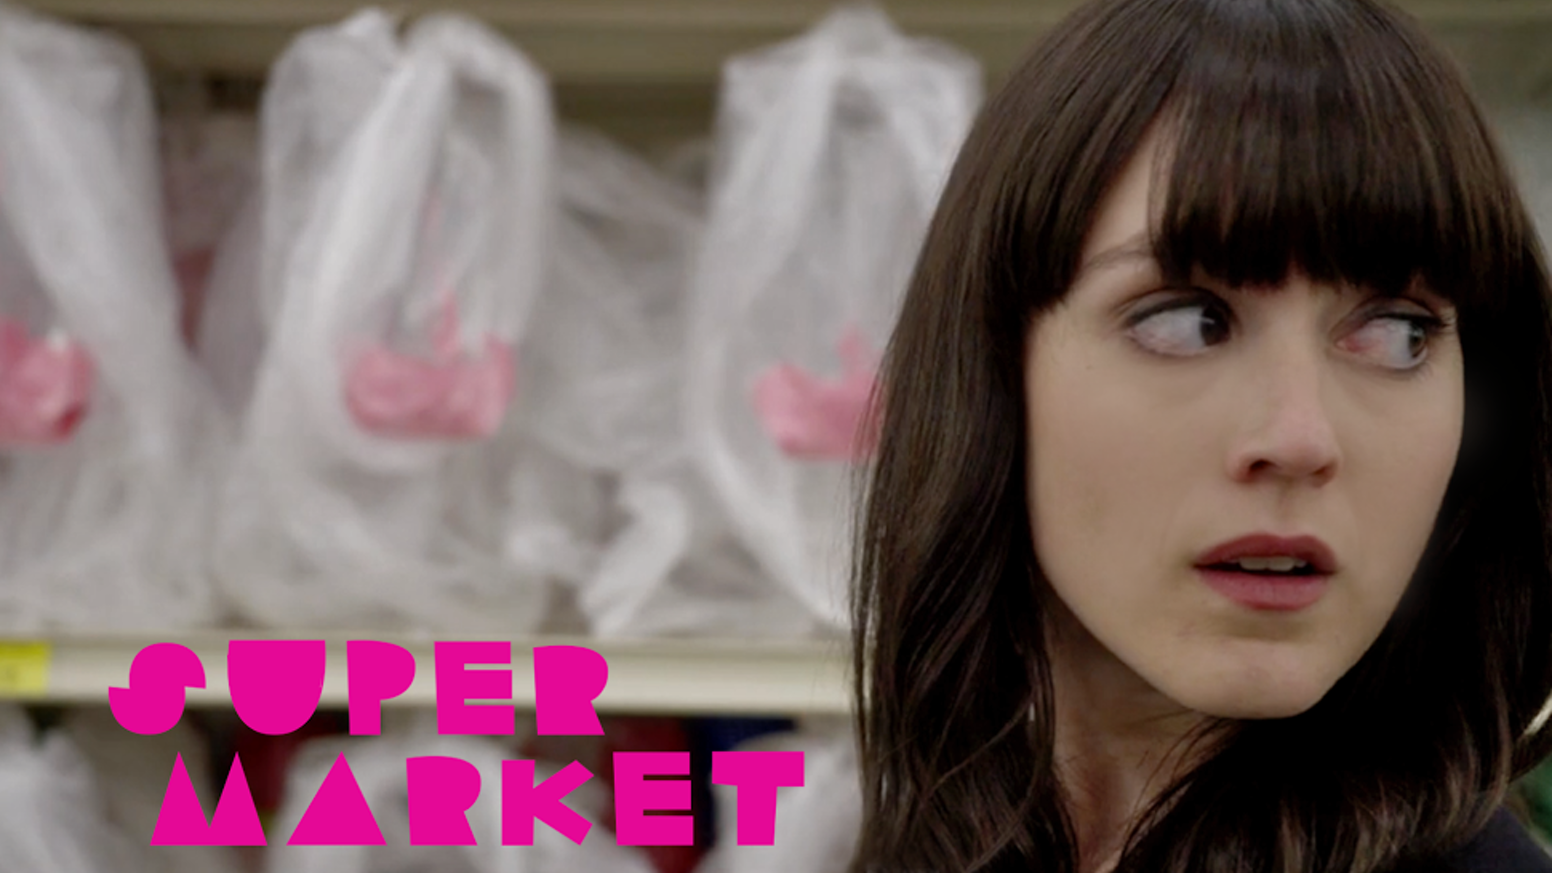 A supermarket transforms into a universe about pregnancy when a preoccupied woman dashes in & discovers she's pregnant with no way out.